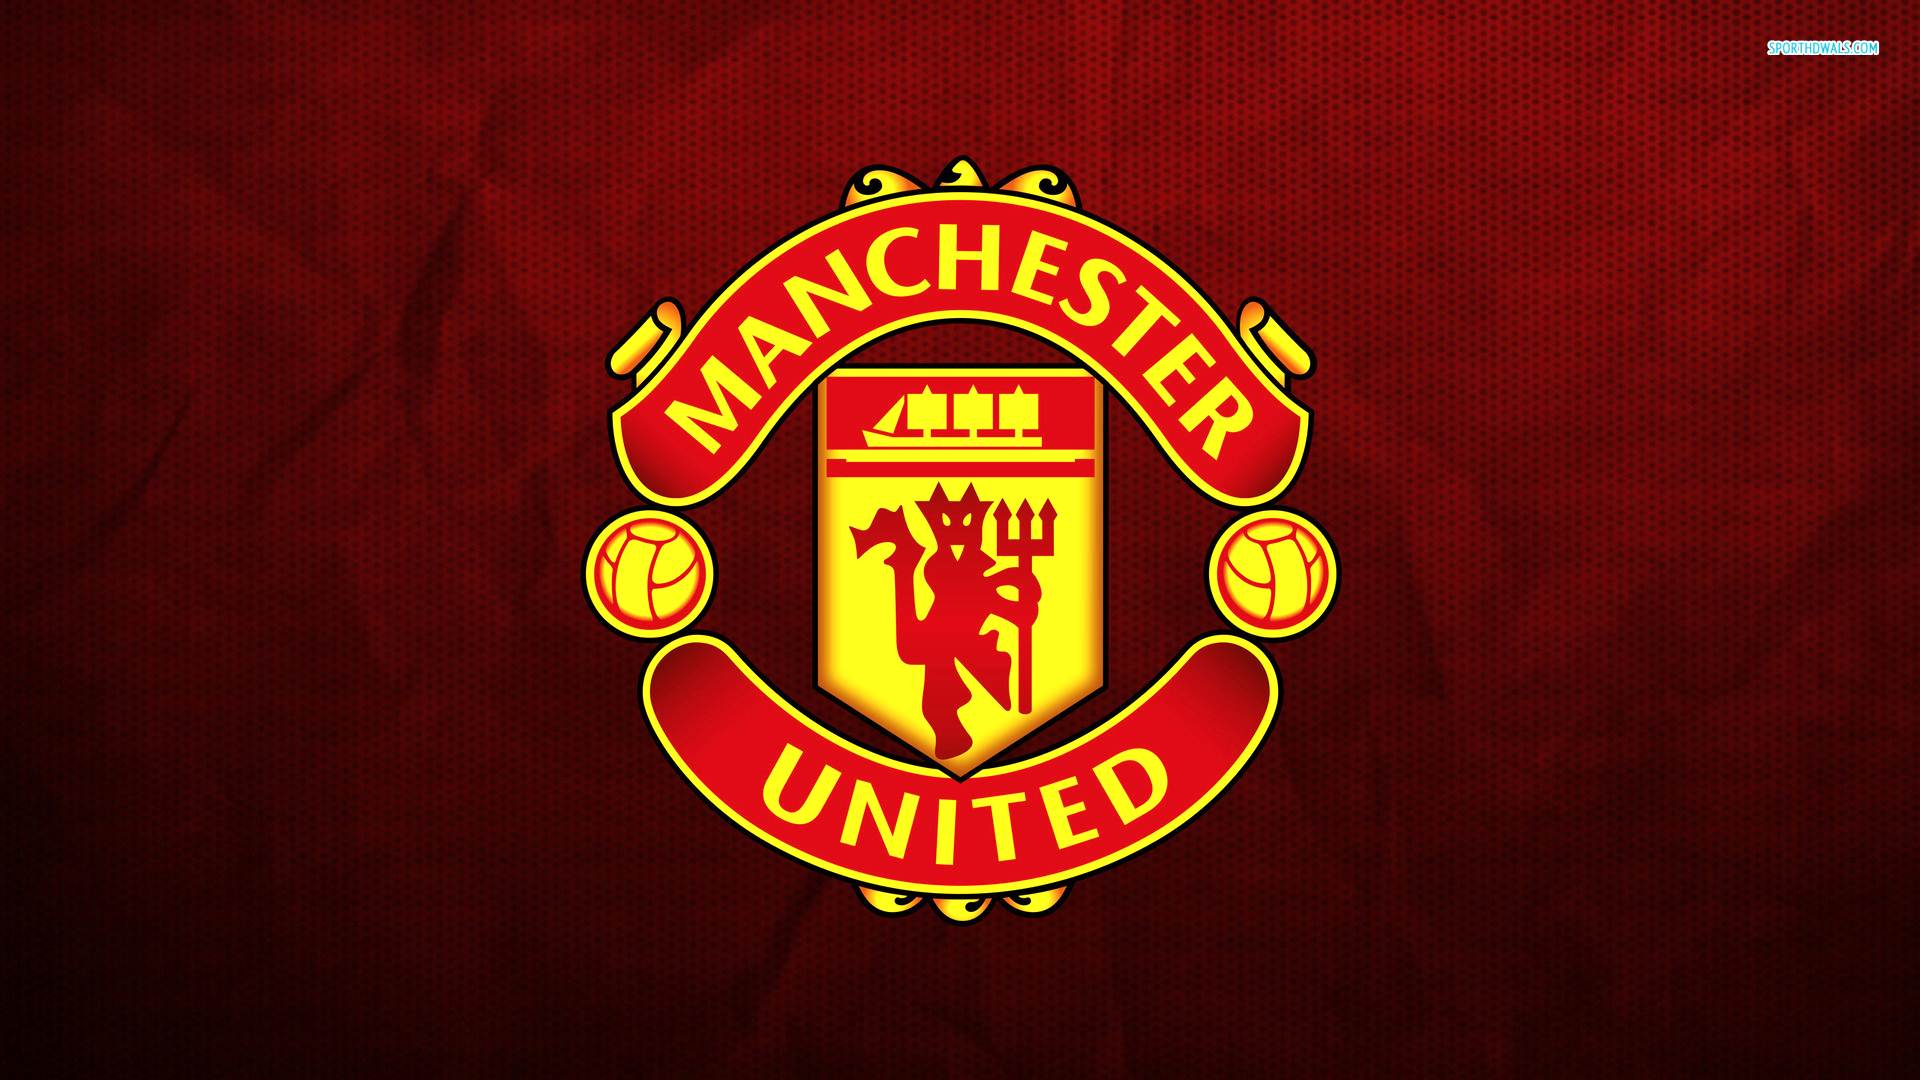 Manchester United Wallpaper p 1920x1080